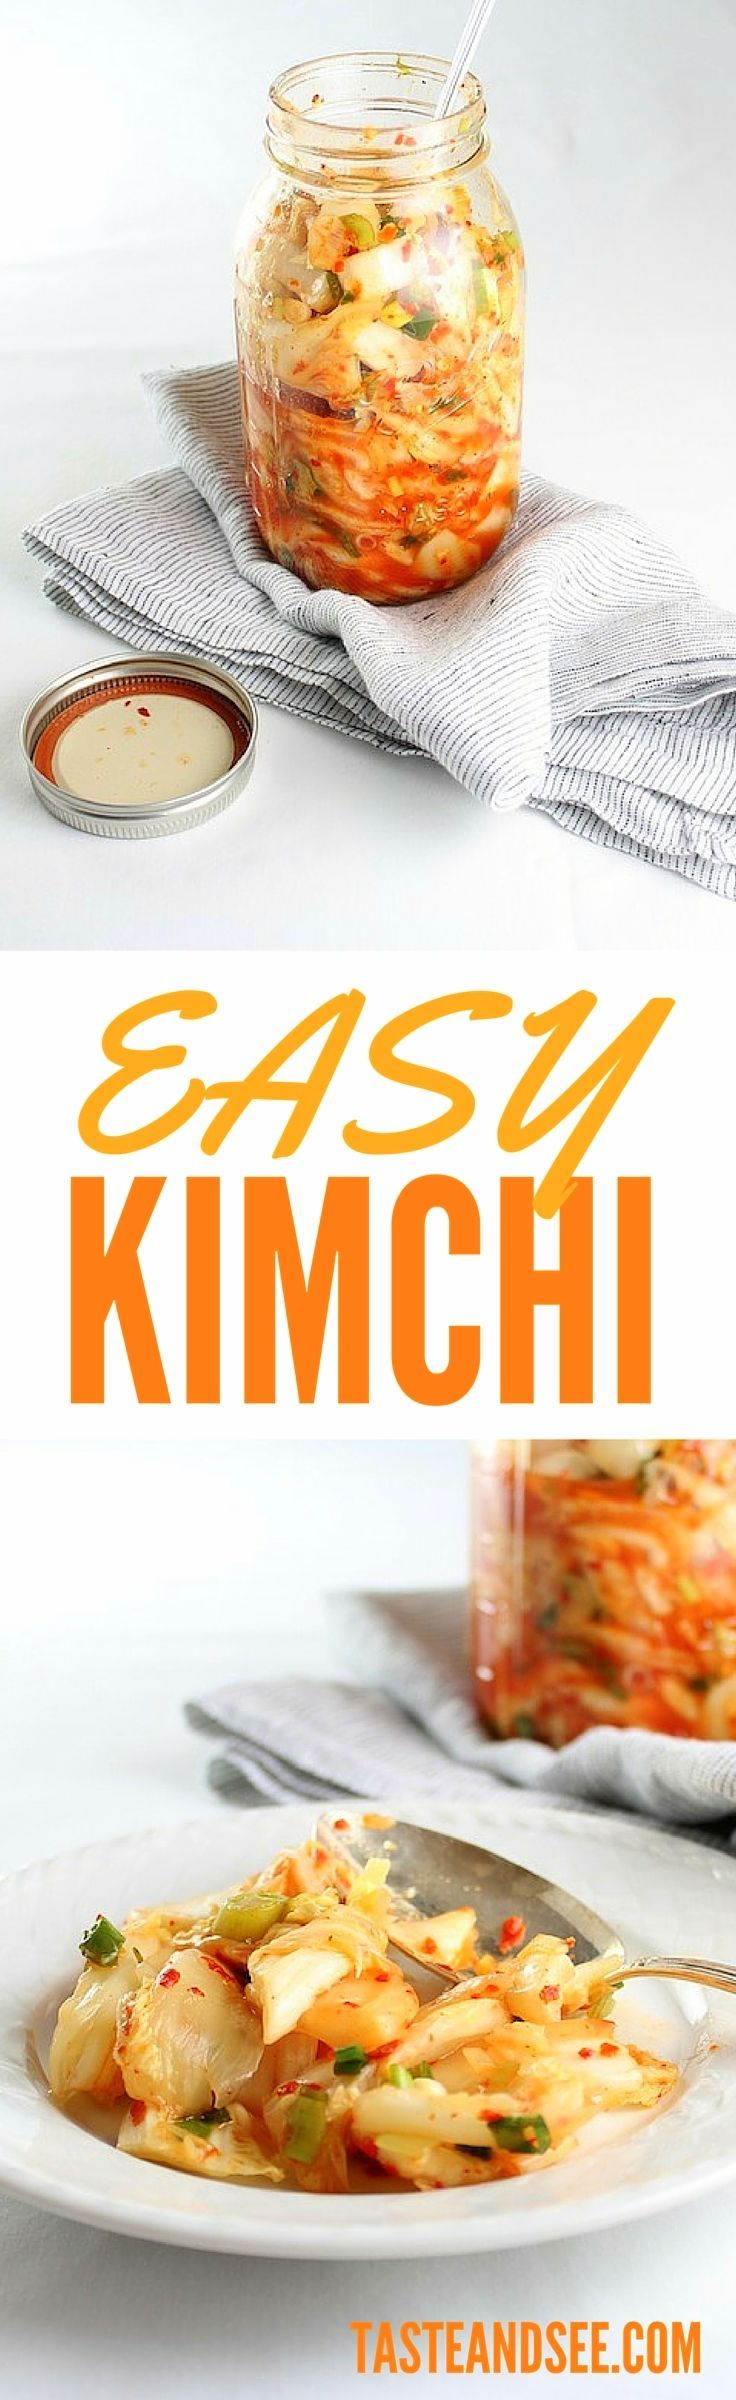 Easy Kimchi: a Korean side dish with scallions, ginger, & Napa cabbage, seasoned with red chili powder, crushed chili flakes, fish sauce, sugar, apple juice, red wine vinegar, and sesame! http://tasteandsee.com